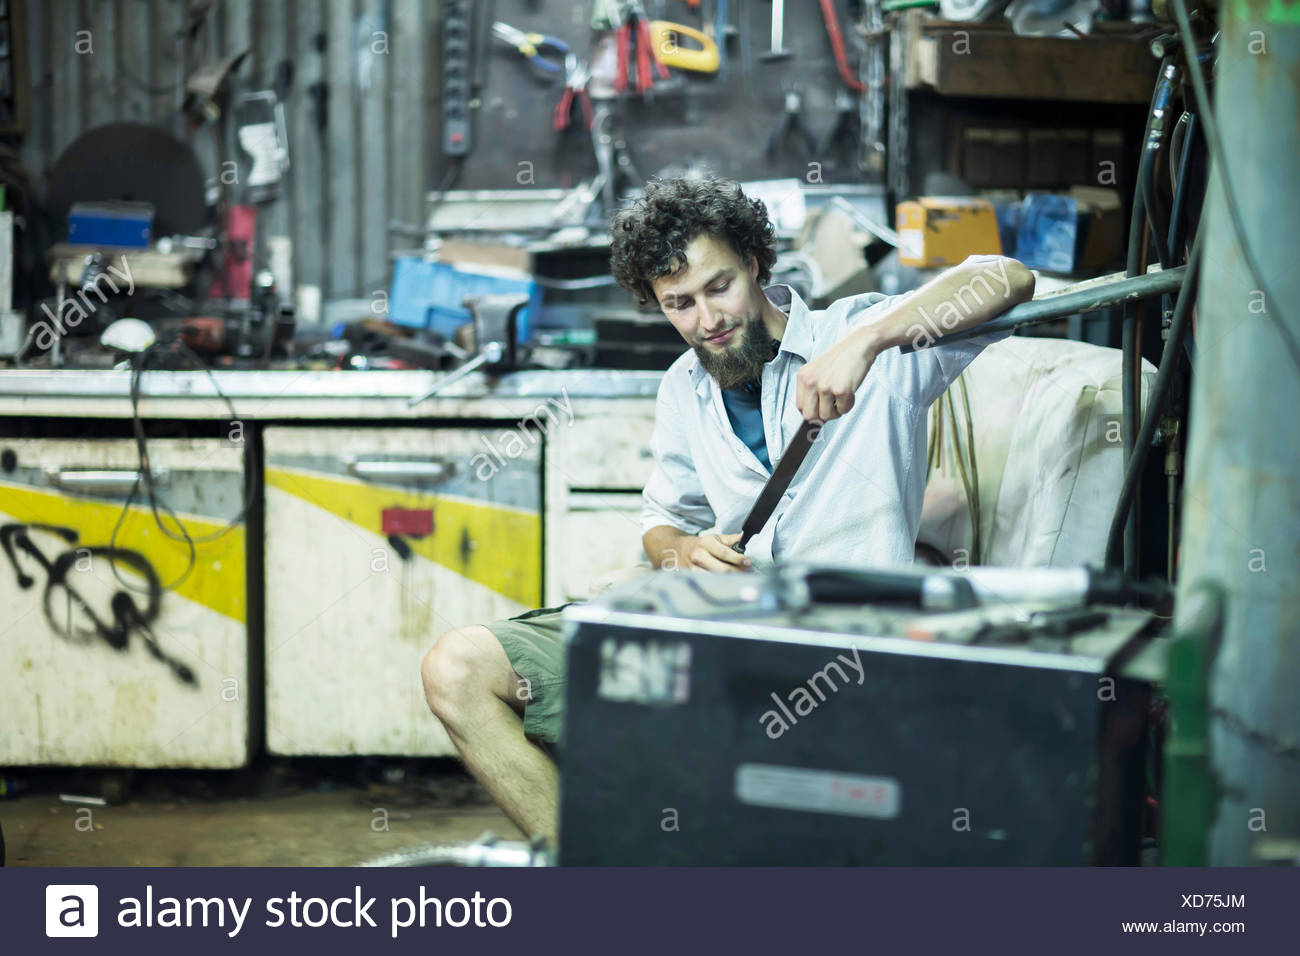 Young man with chin beard in alternative technical room - Stock Image